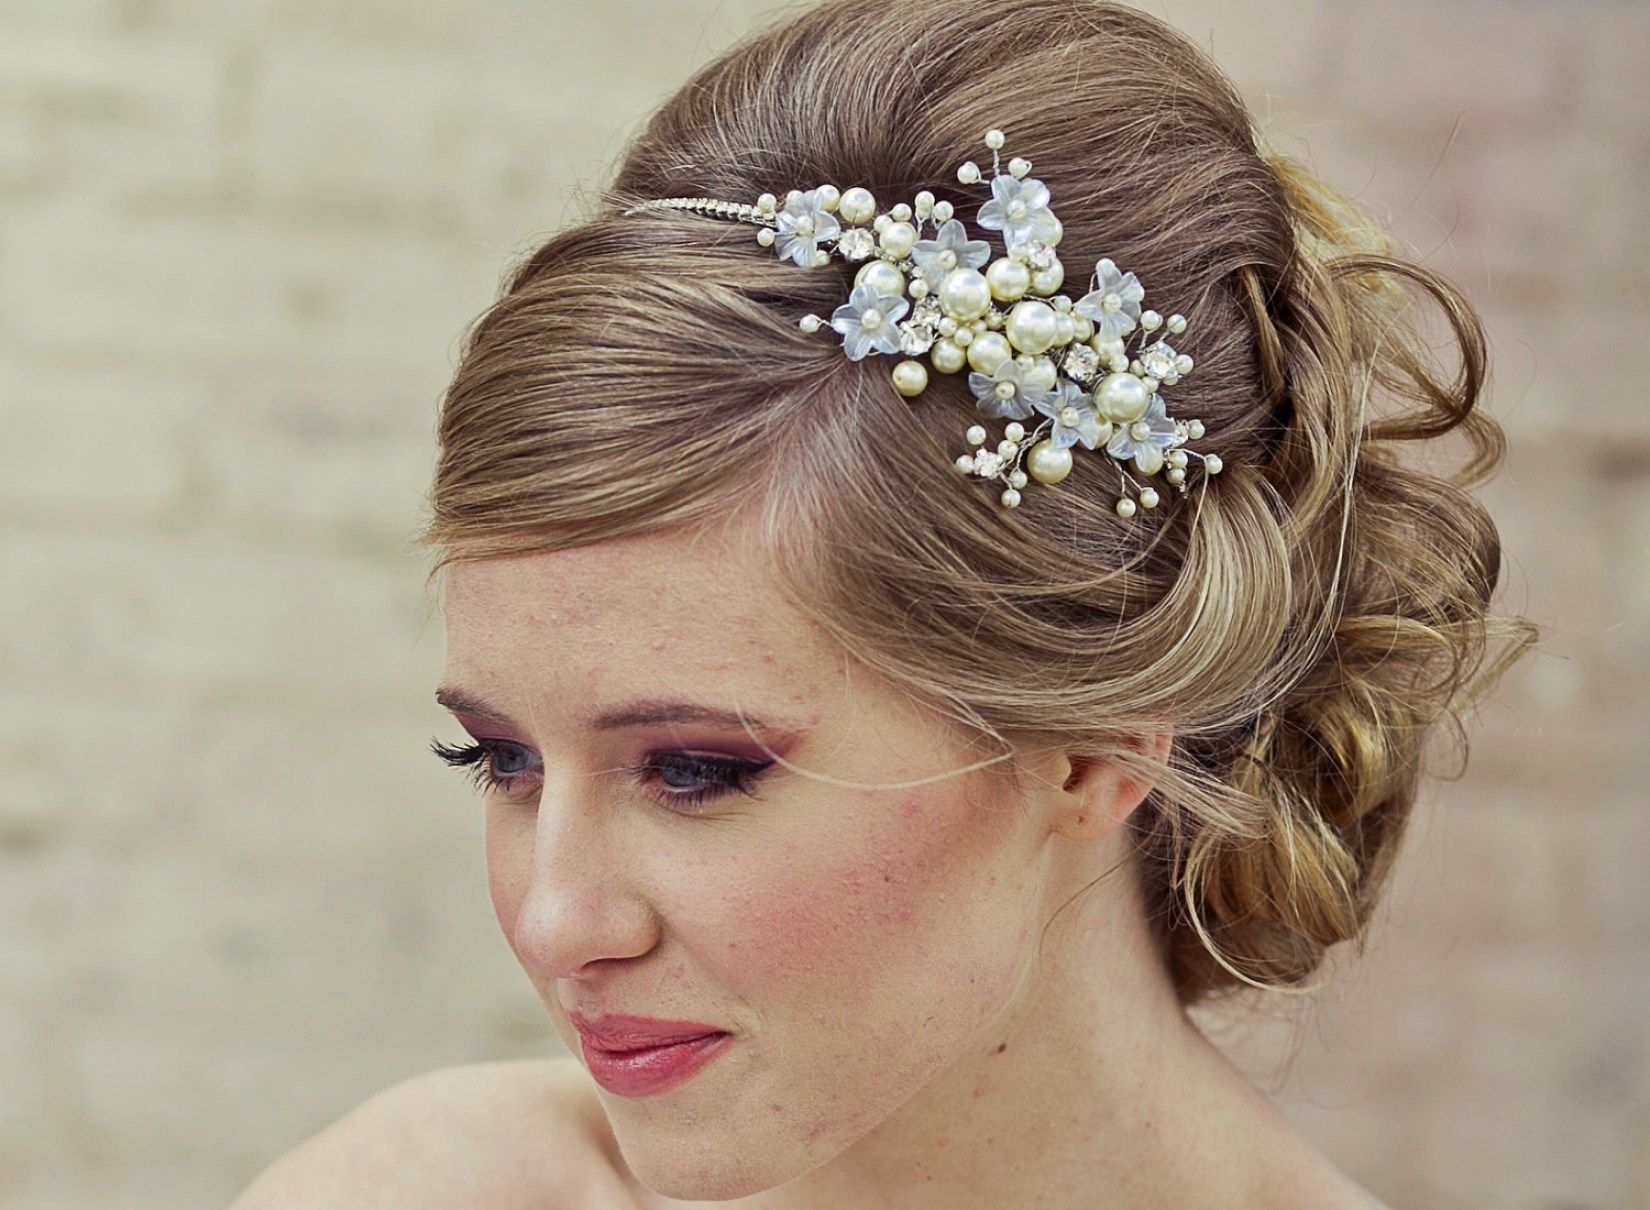 32 beautiful simple updo hairstyles for weddings | simple updo